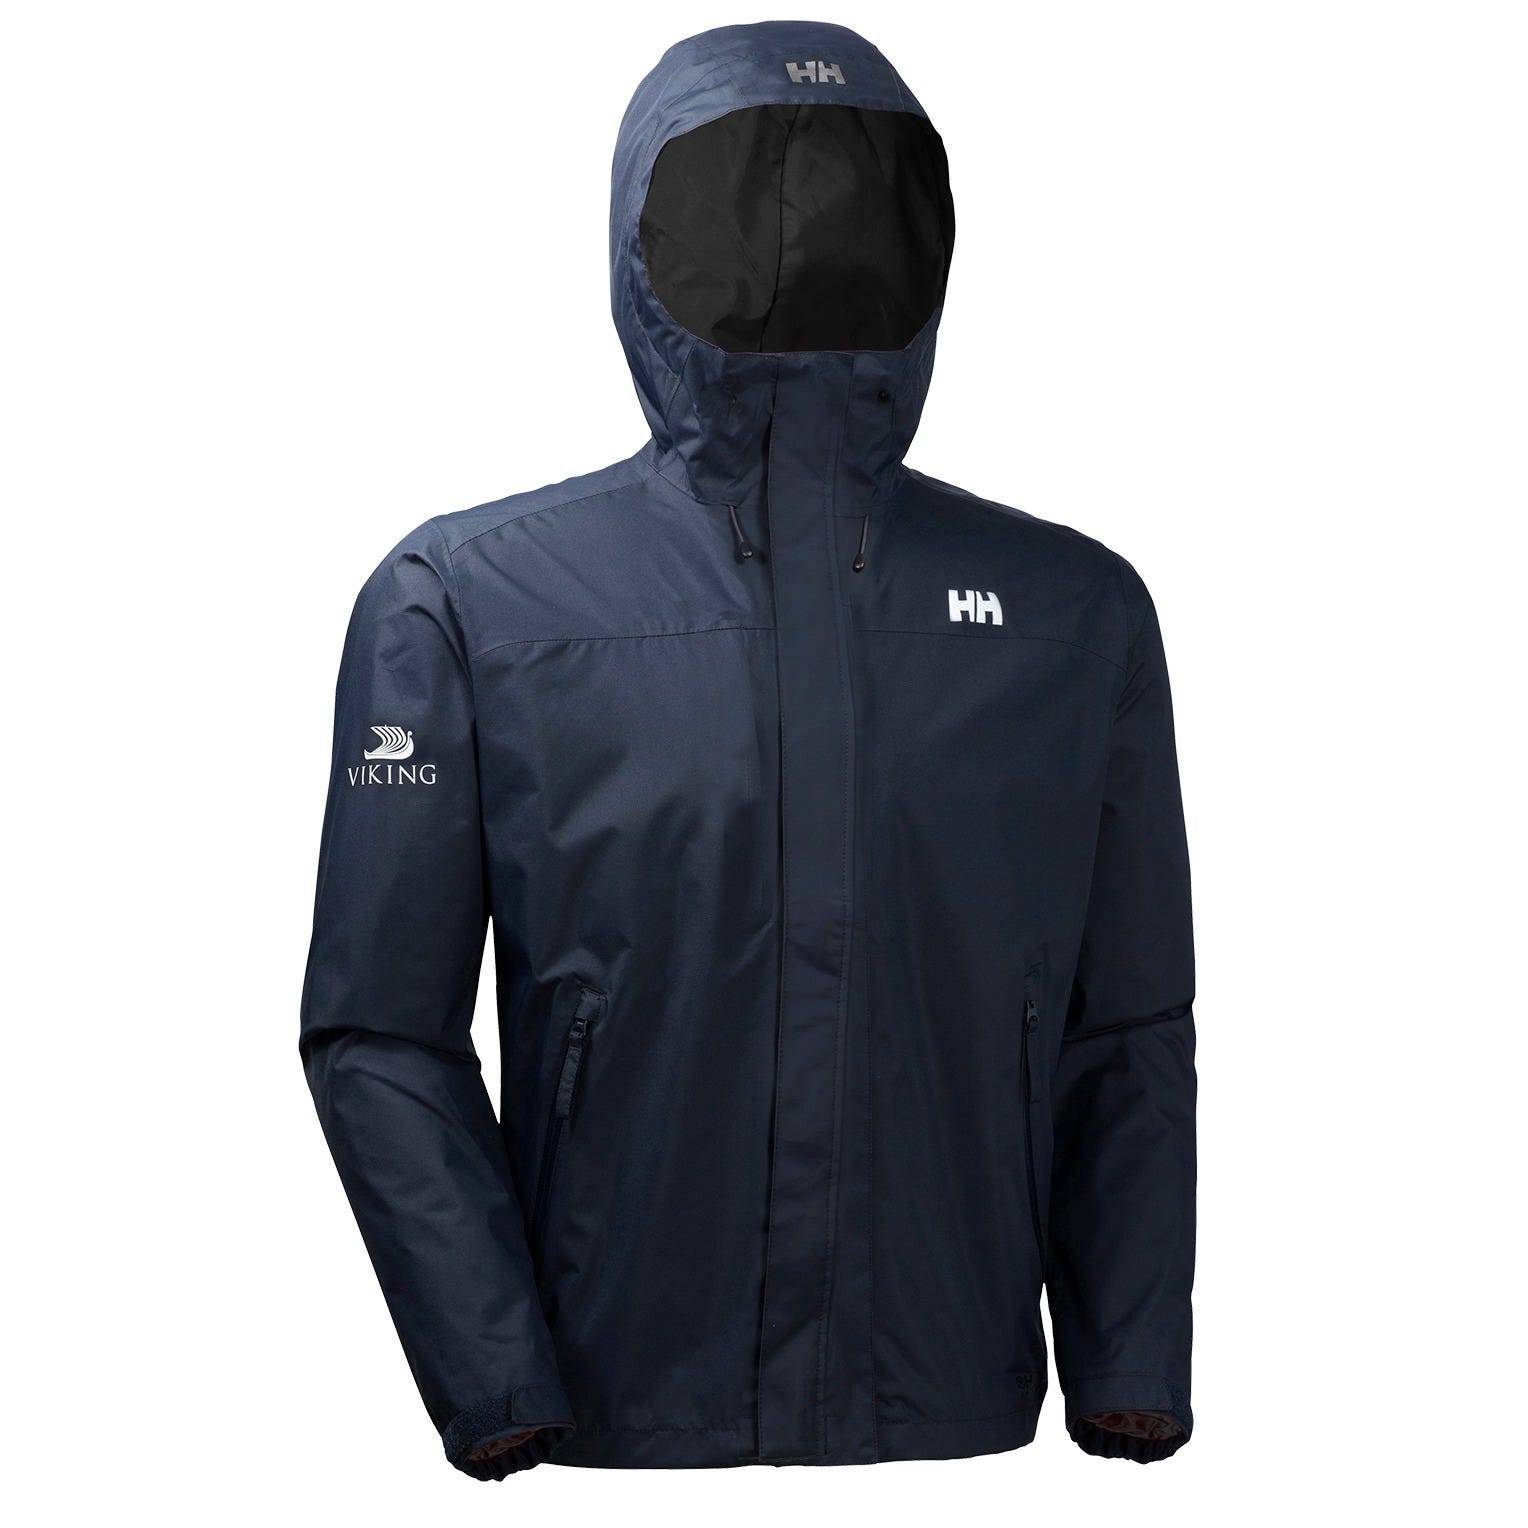 Helly Hansen Viking Cruises Vancouver Jacket Navy S